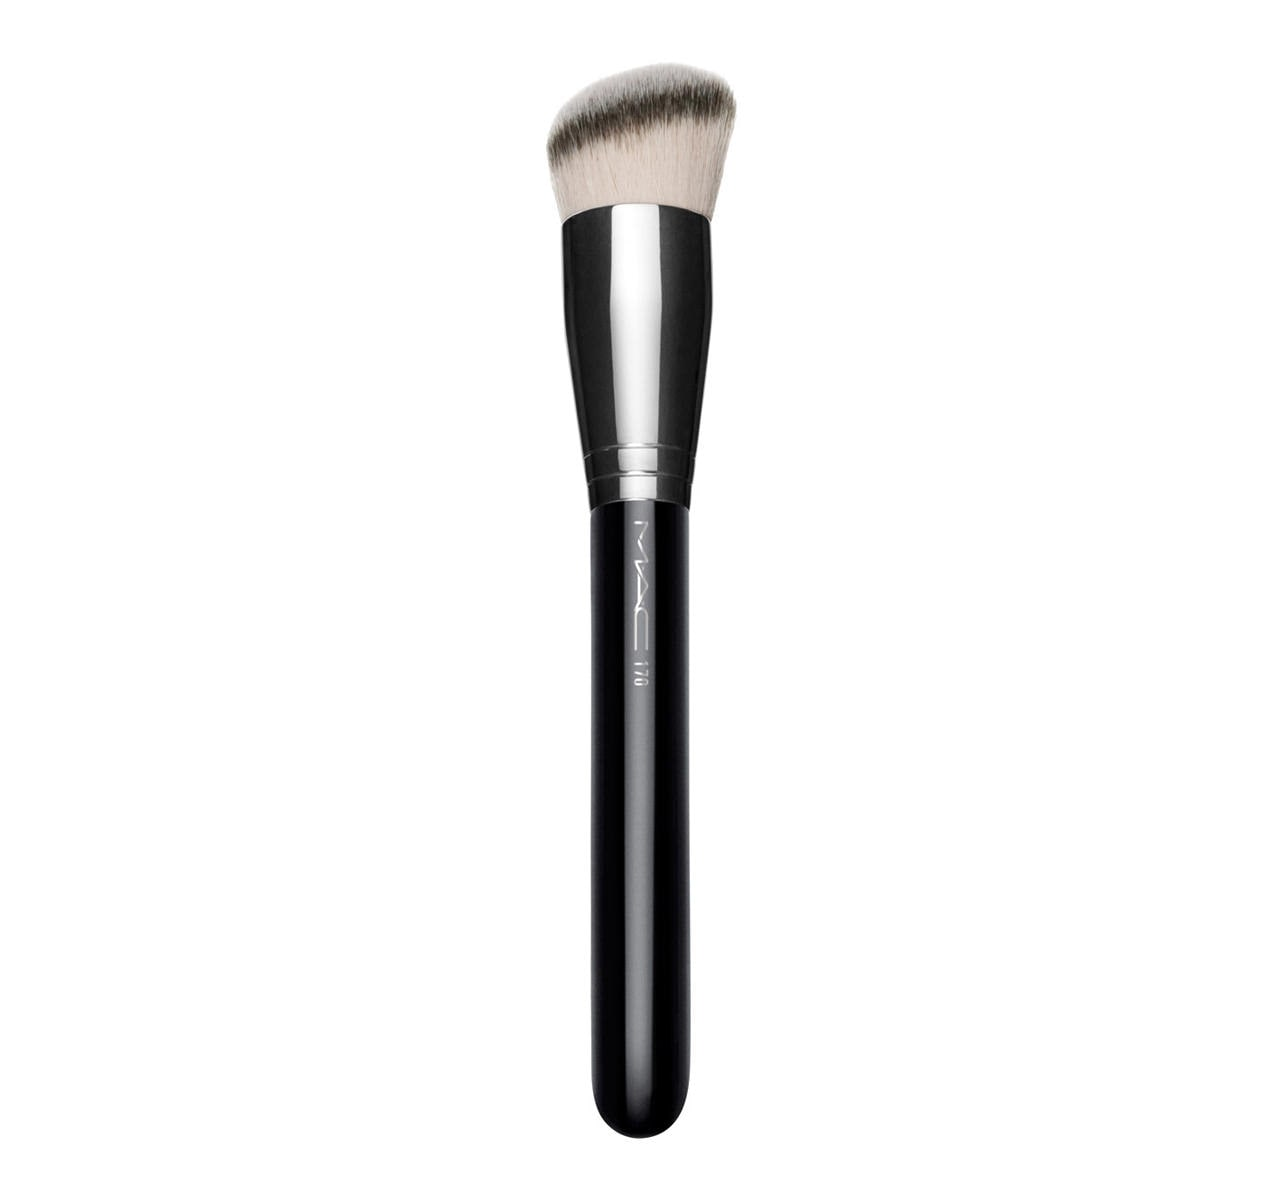 Mac 170 Brush Rounded Foundation Slant Brush Mac Cosmetics Mac Cosmetics Canada Official Site